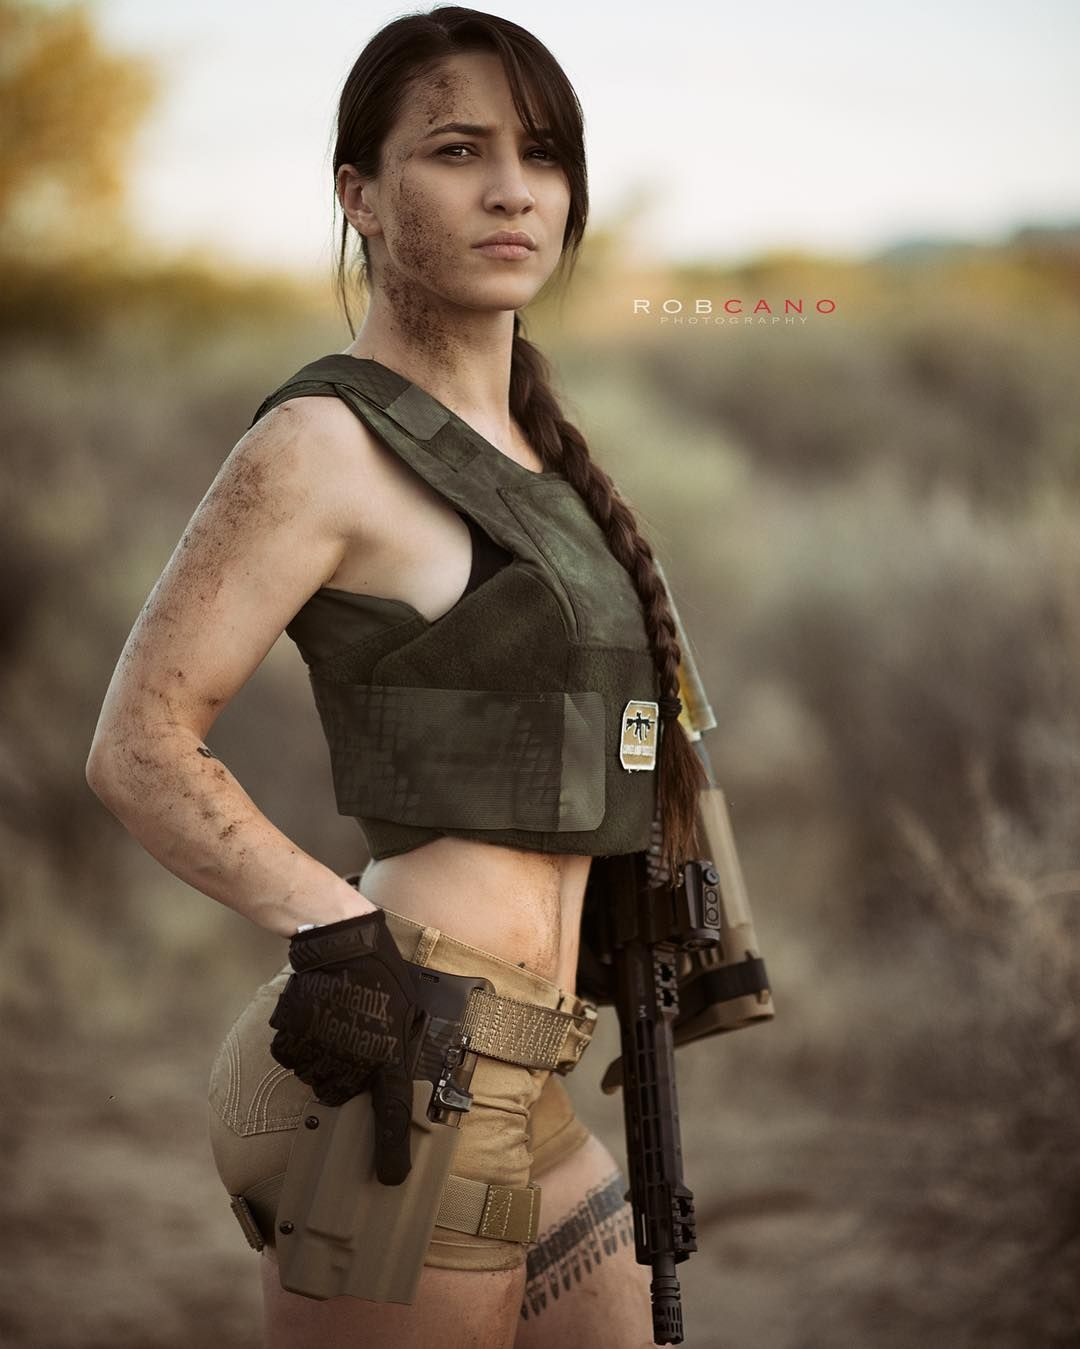 Amazing Fun Facts Military Girl  Women In The Military -9615